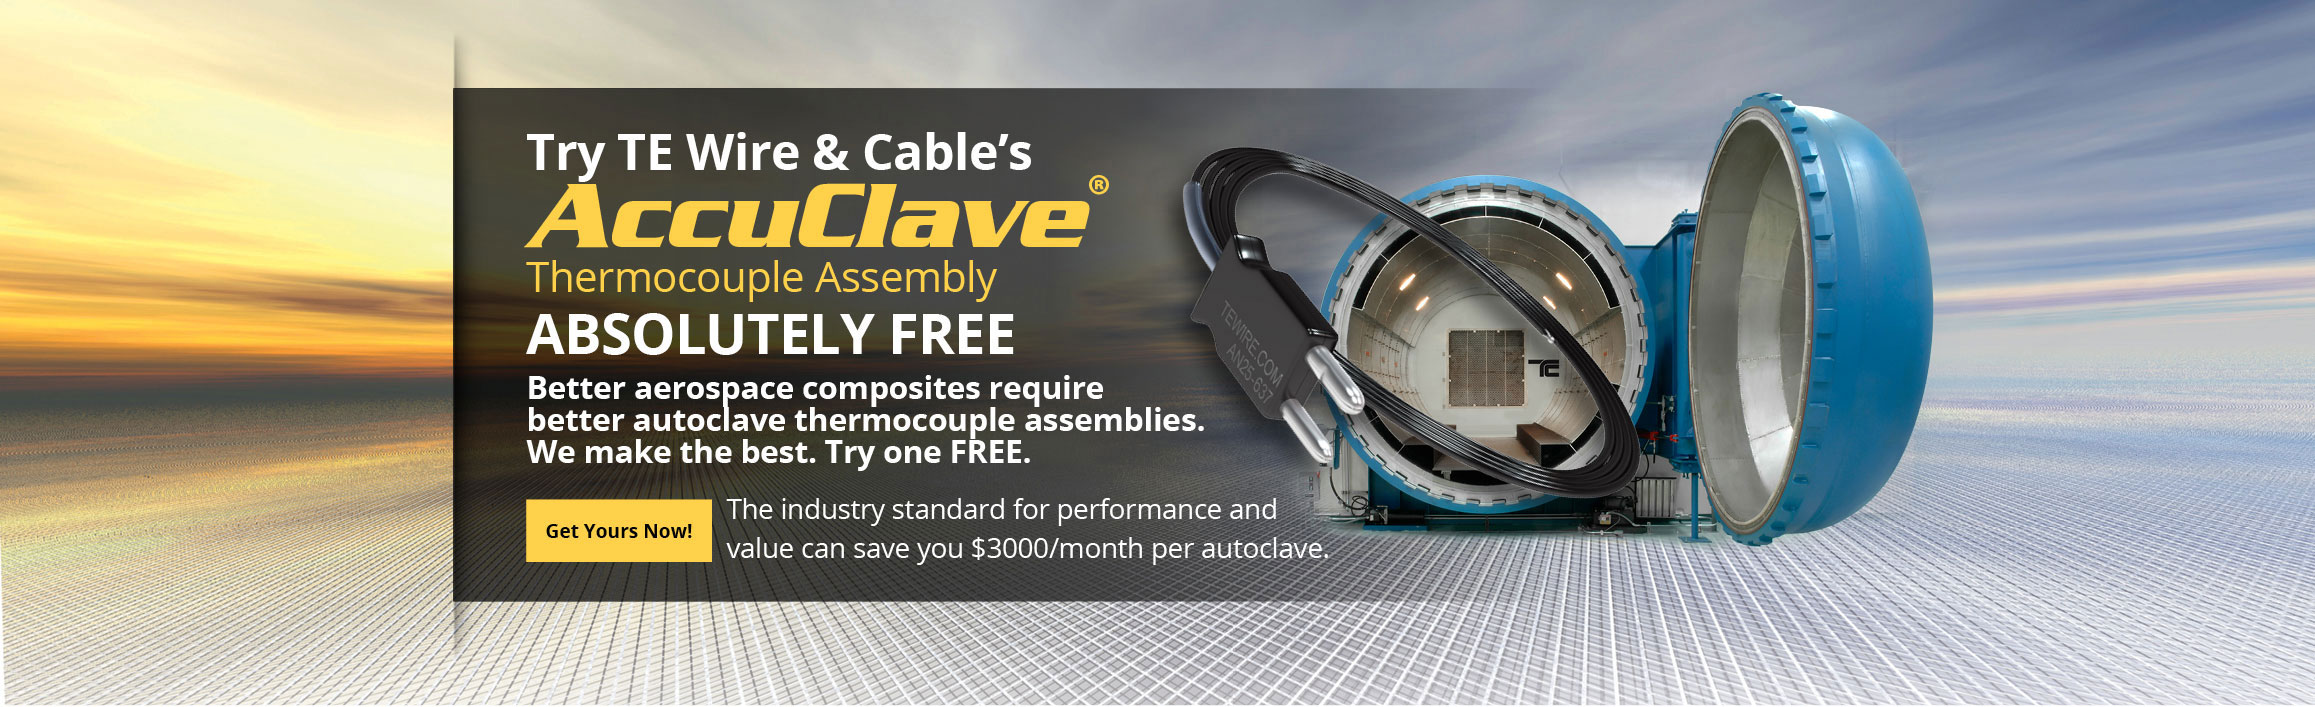 Te Wire Cable Thermocouple Manufacturers Wiring Companies In India Metallurgylbanner Freeaccuclavebanner